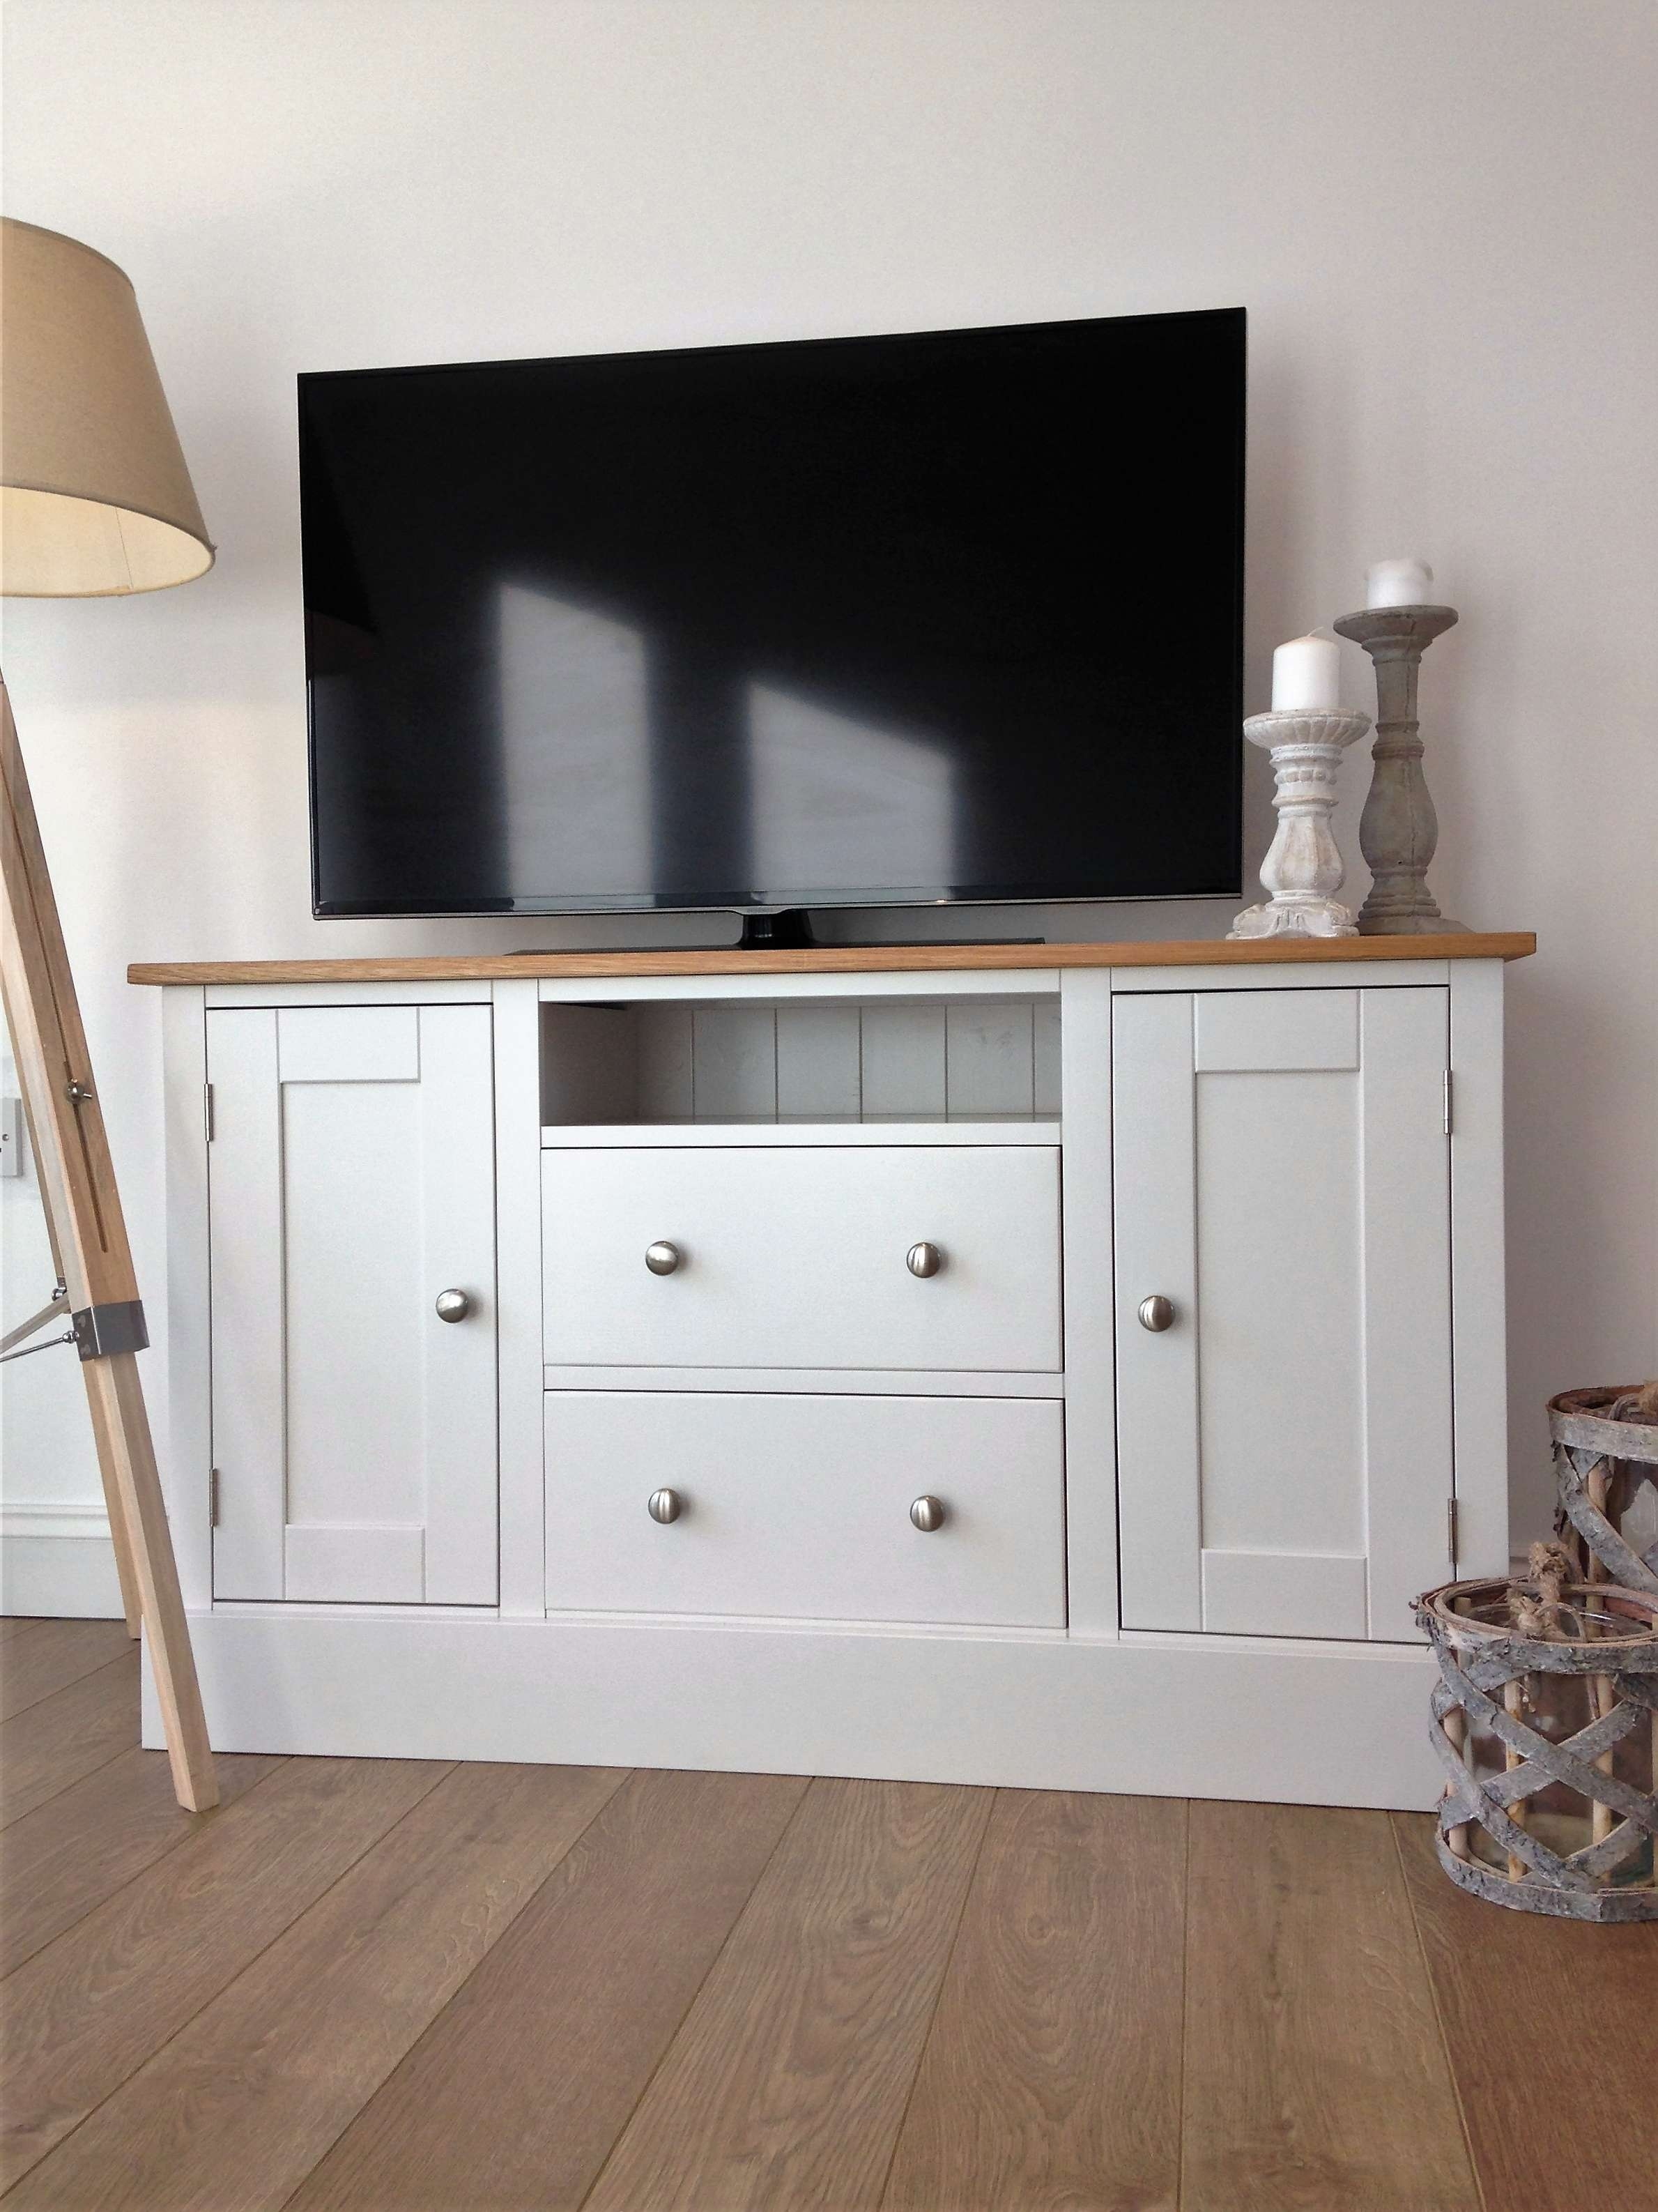 4ft Painted Tv Cabinet Made Of Solid Oak & Pine – Nest At Number 20 In White Painted Tv Cabinets (View 6 of 20)